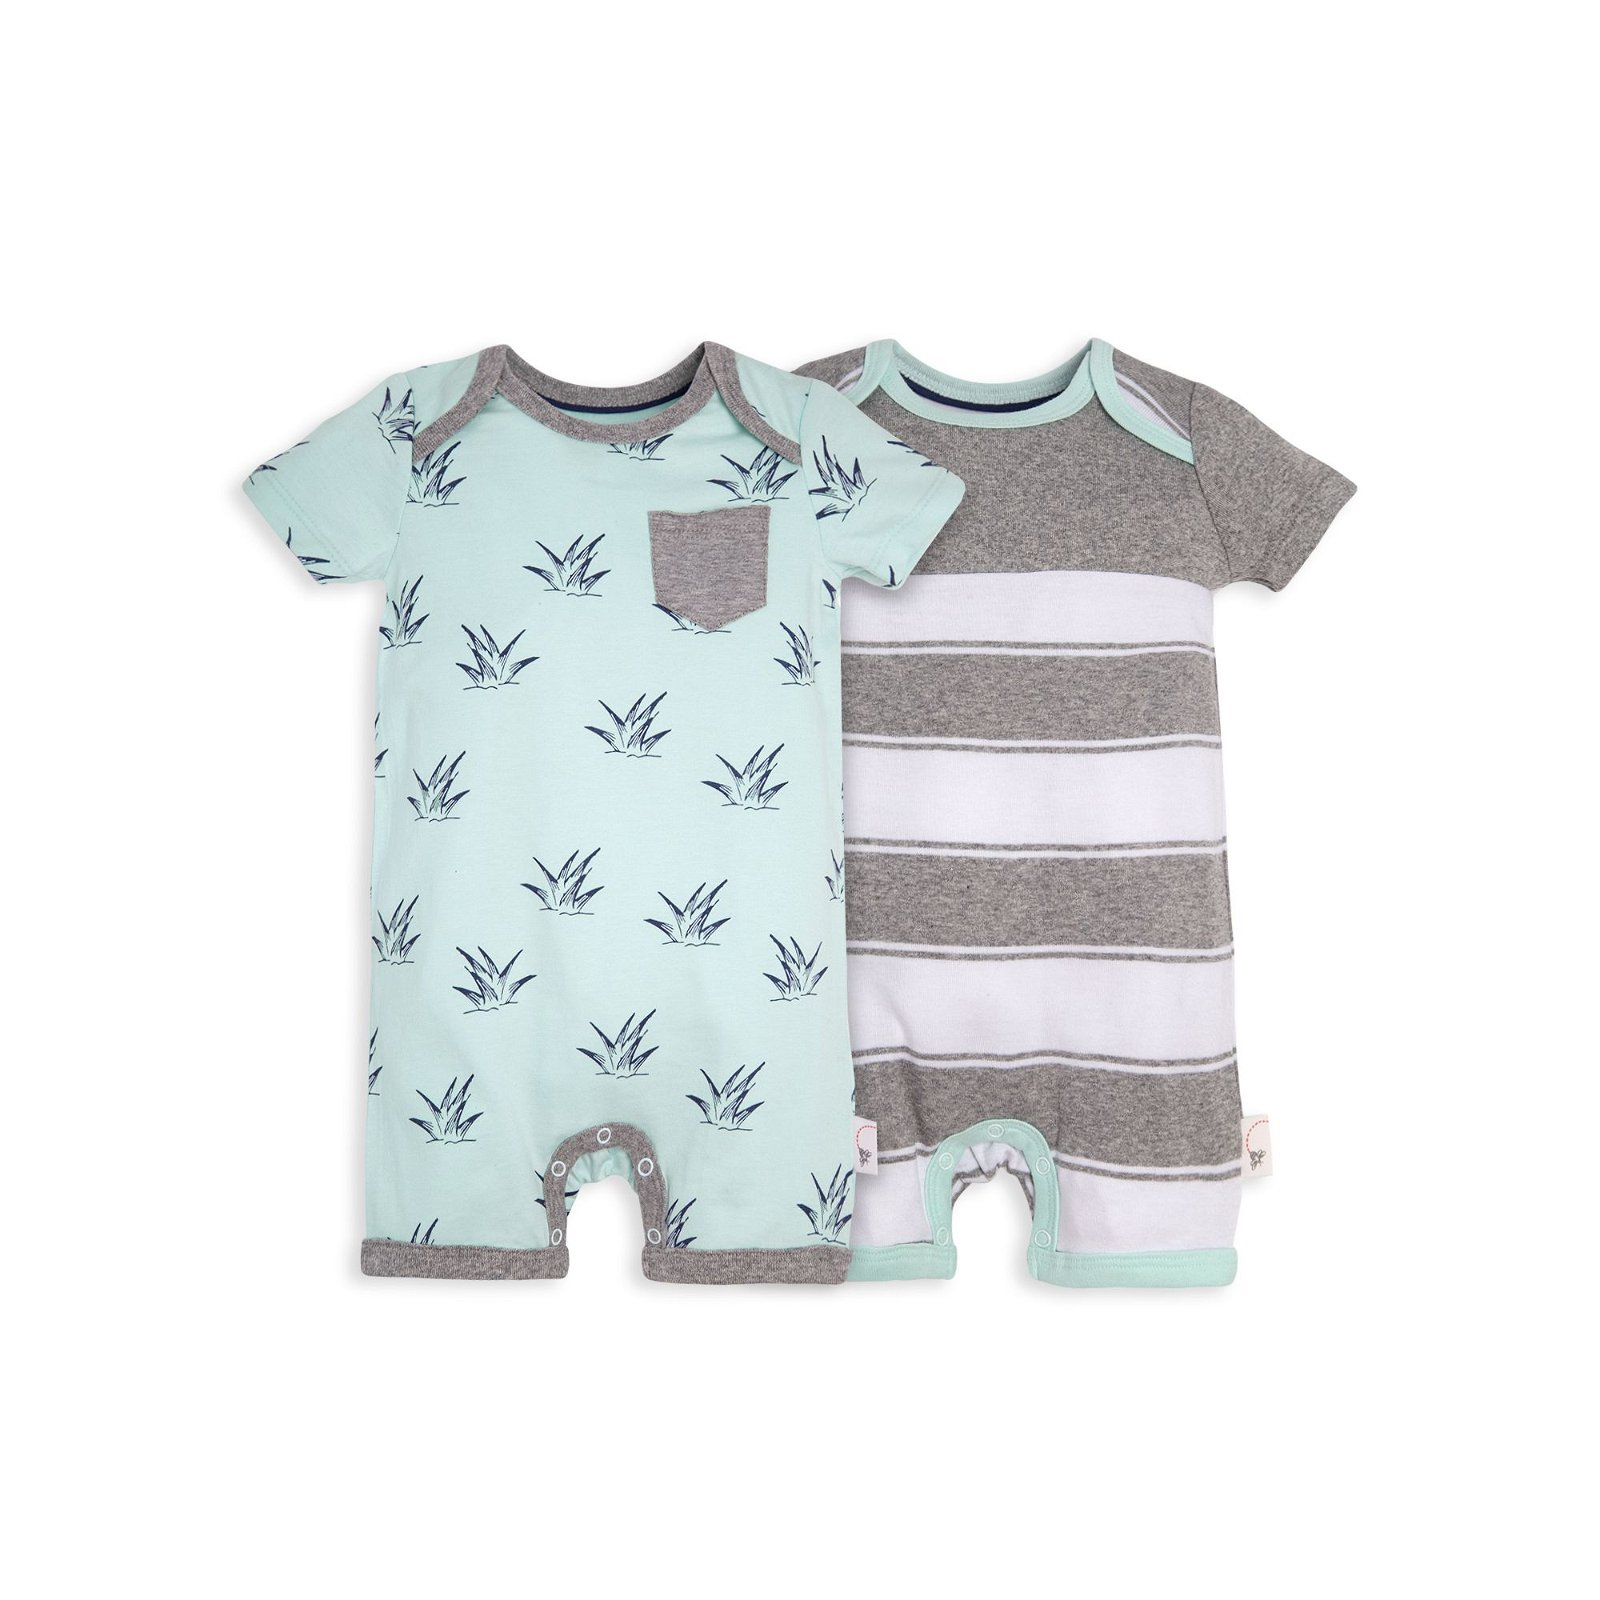 Sprouts and Stripes Organic Baby Romper 2 Pack